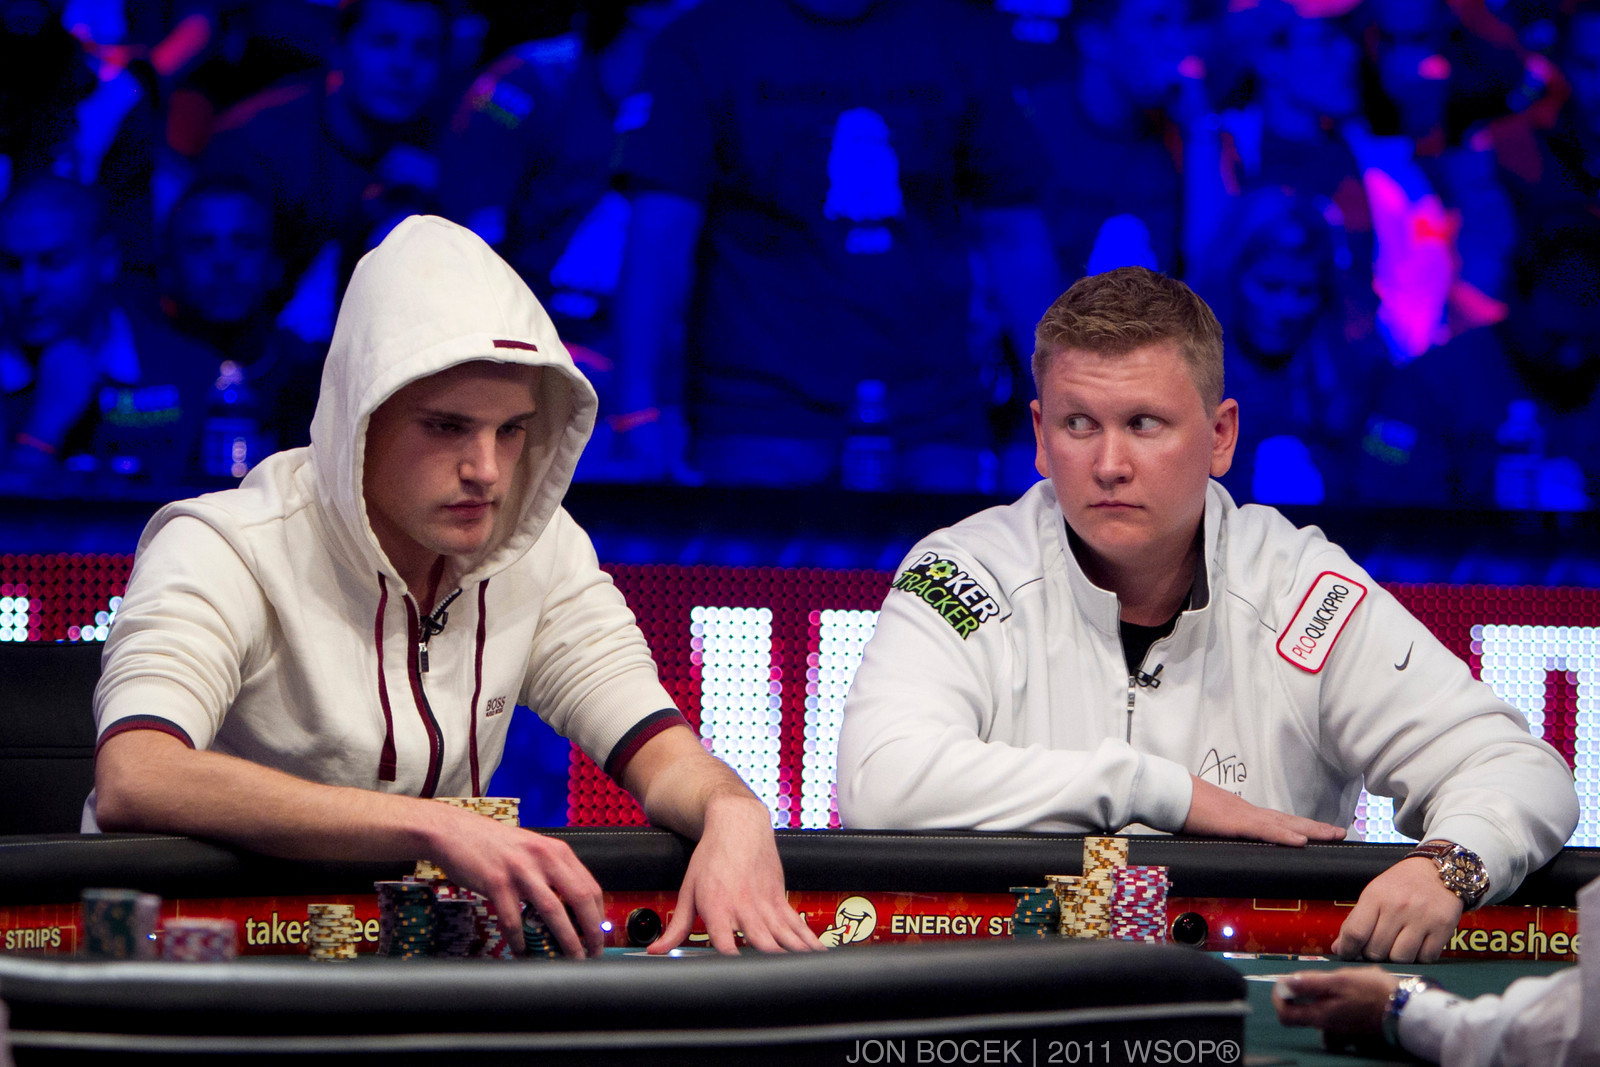 2011 world series of poker main event poker lotto rules